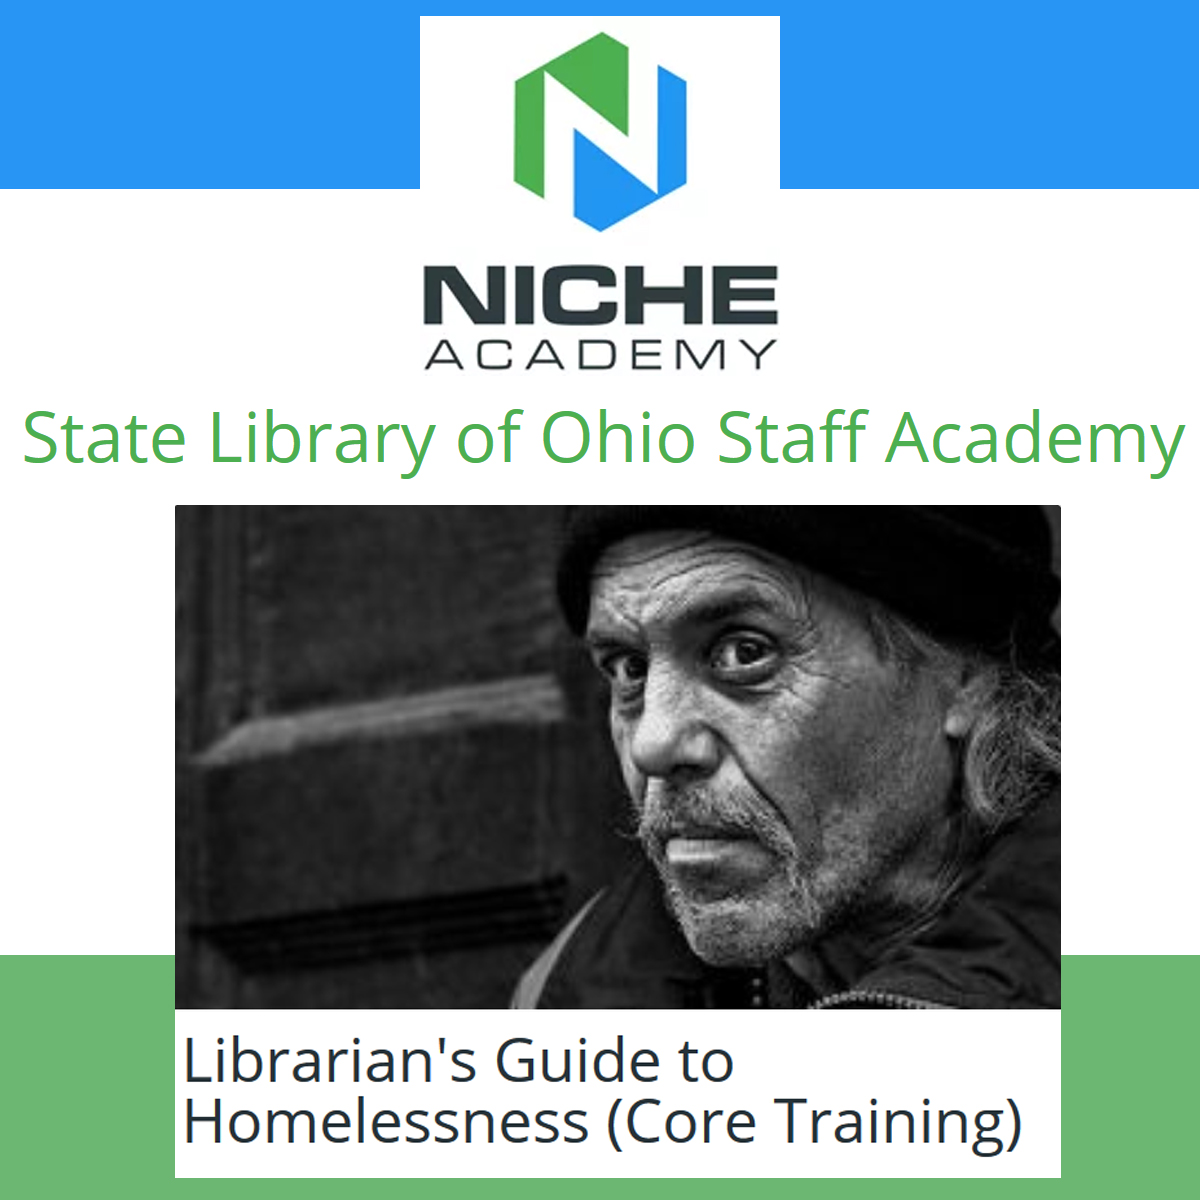 Niche Academy logo with title slide of Librarian's Guide to Homelessness Training